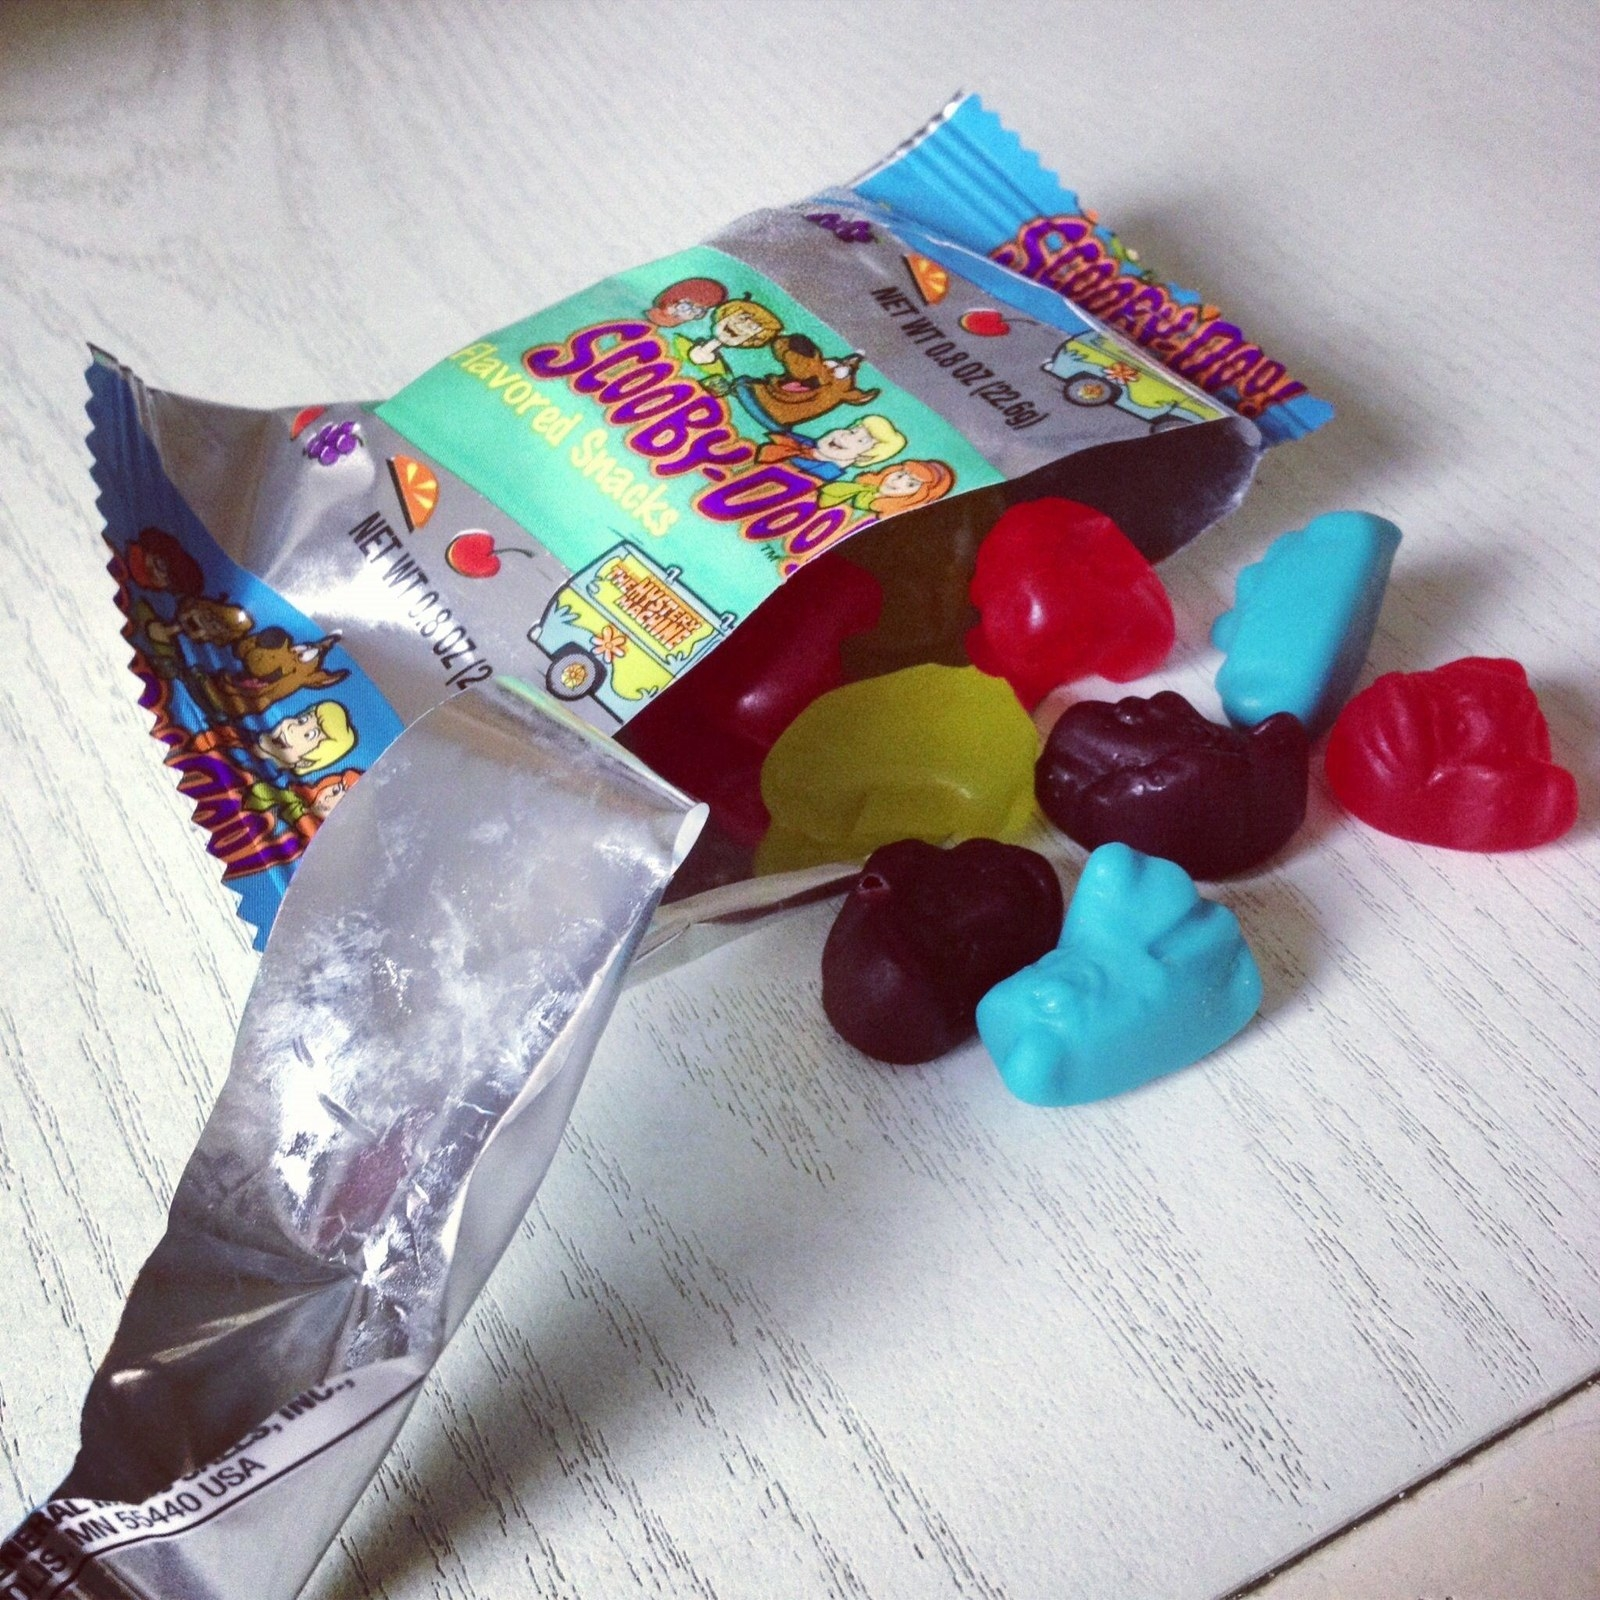 The GFSOAT (greatest fruit snacks of all time) are available on Amazon.